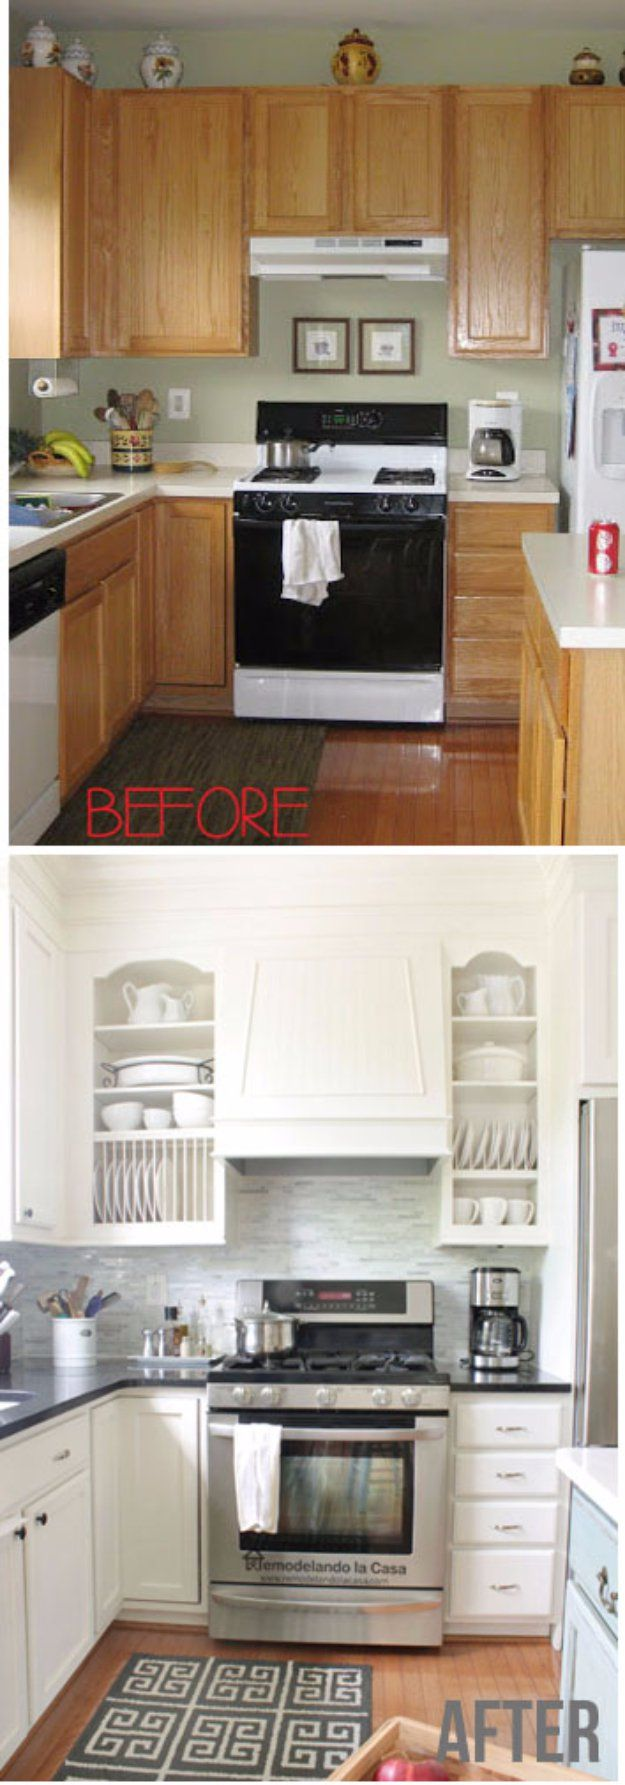 15 Exceptional DIY Makeover Ideas For Your Kitchen When You're On A Budget